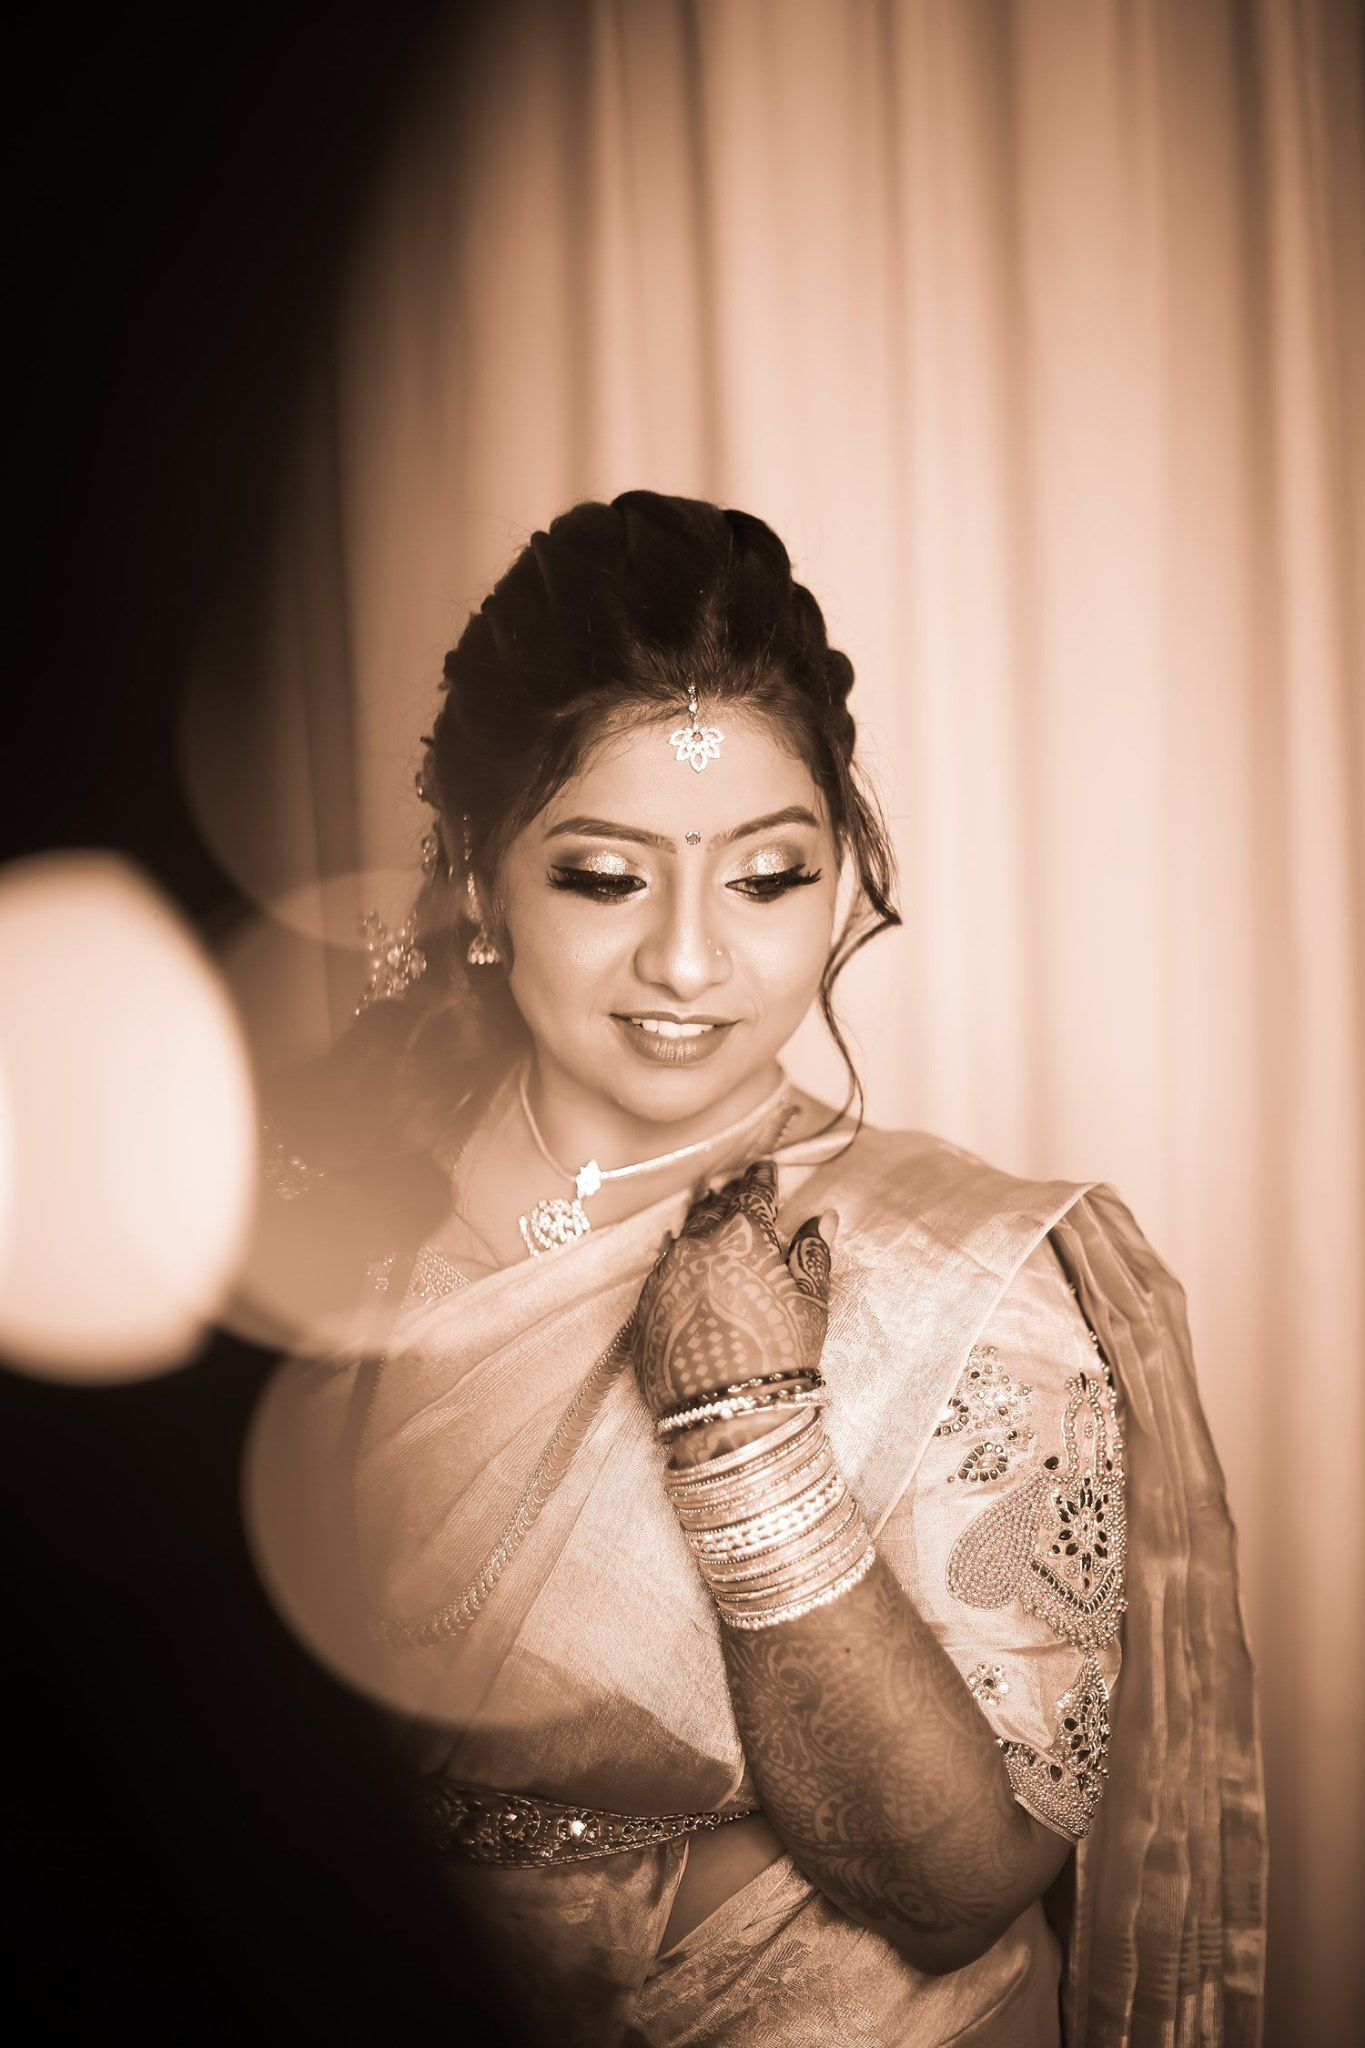 Wedlock - Wedding Photographer in Bangalore #photography #photographylovers #photographysouls #photographyeveryday #photographyislife #photographylover #photographyislifee #photographylife #photographyart #photographyoftheday #photographyy #photographylove #photographyaddict #photographyskills #photographybook #photographyprops #photographydaily #photographyisart #photographyaccount #photographystudio #photographyday #photographynature #photographysoul #photographystudent